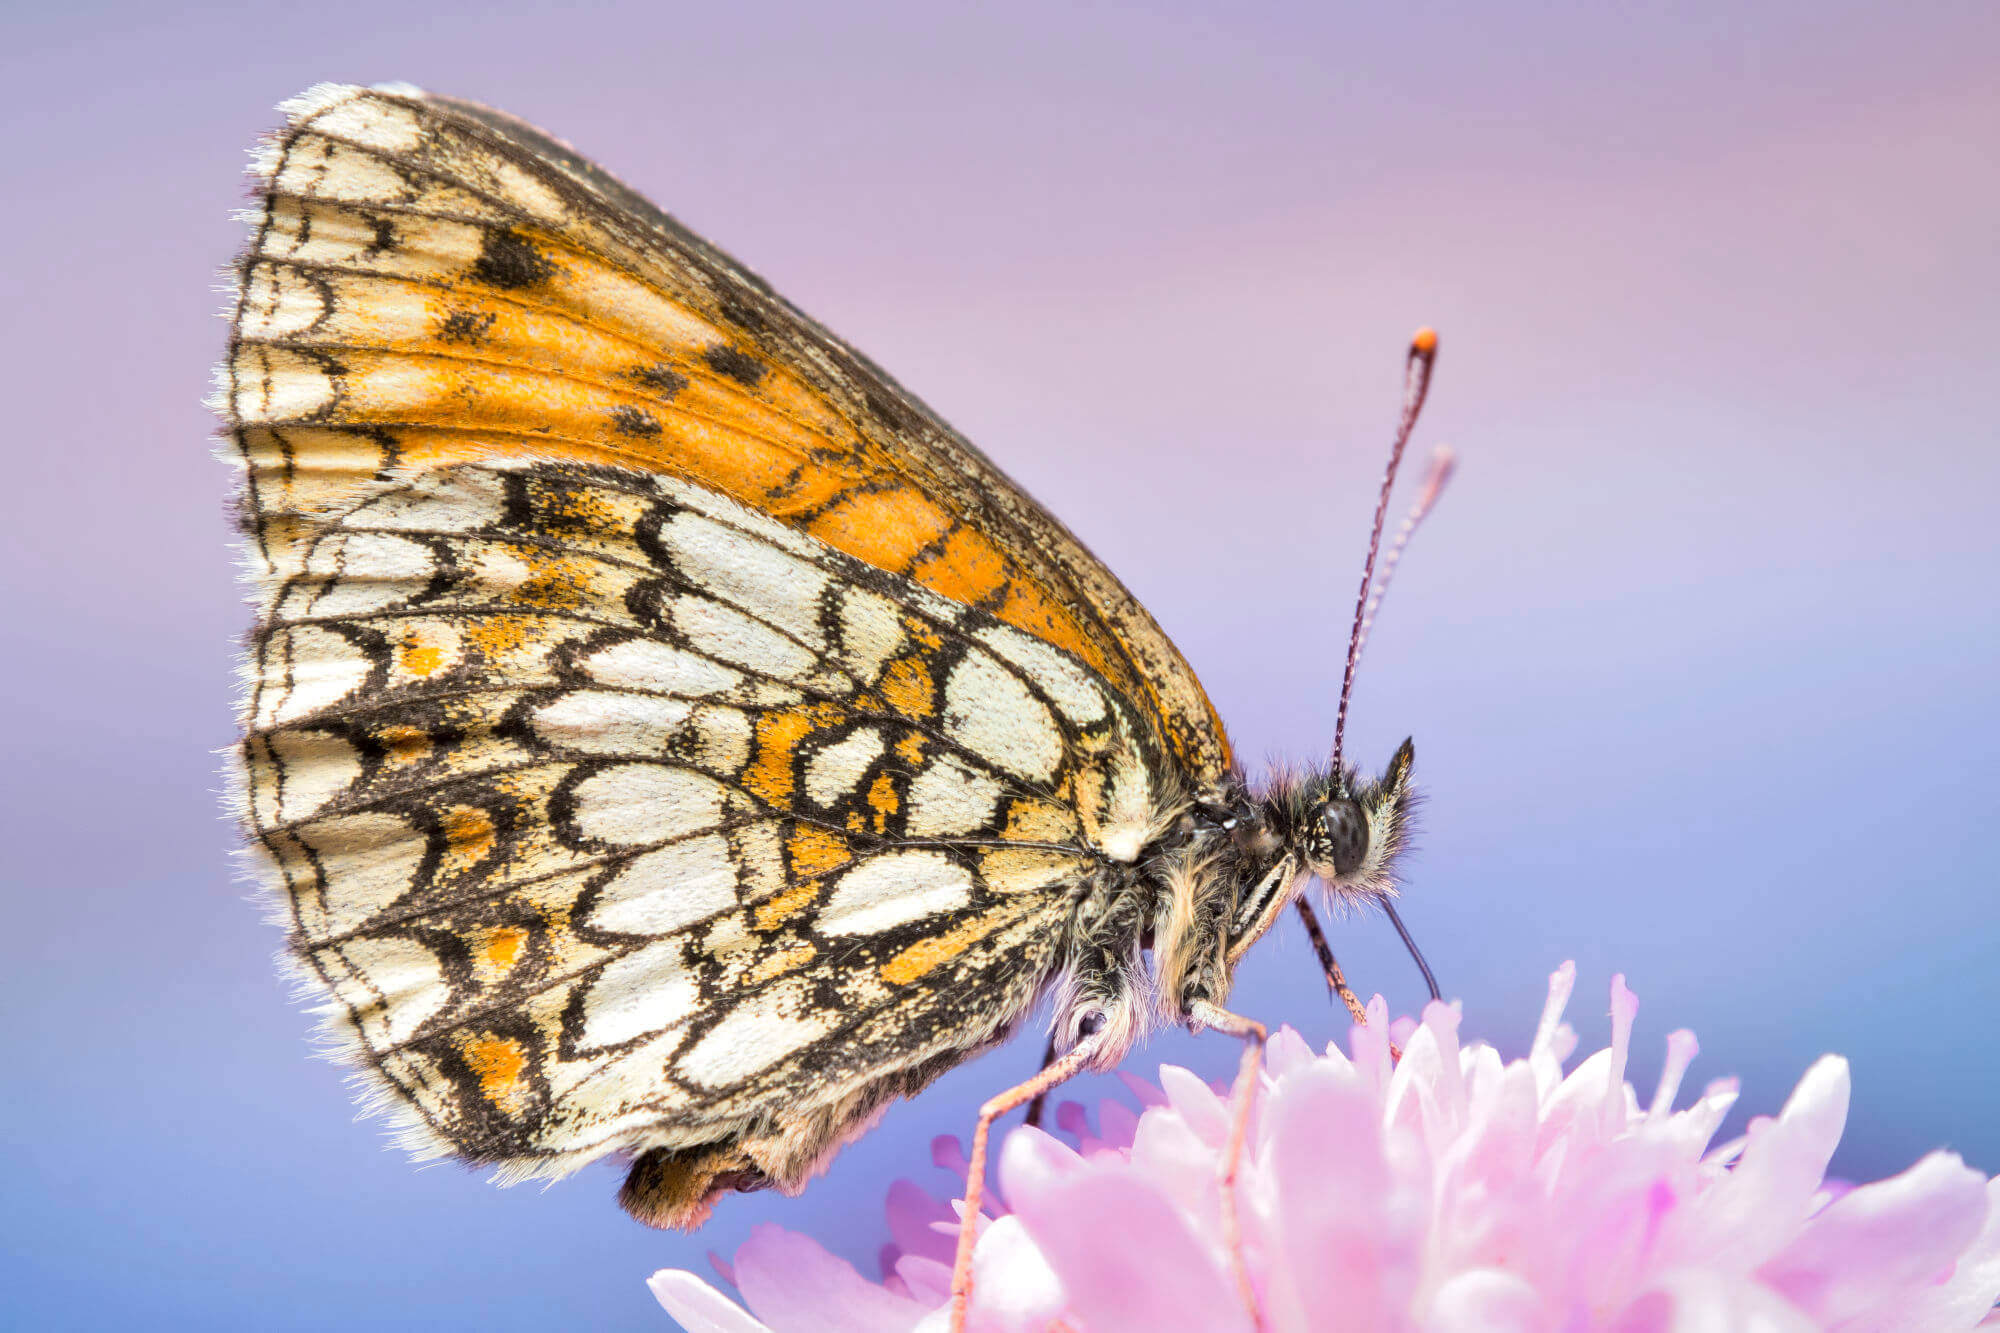 Boloria eunomia, butterfly, macro photography, close up, nature, nature photography